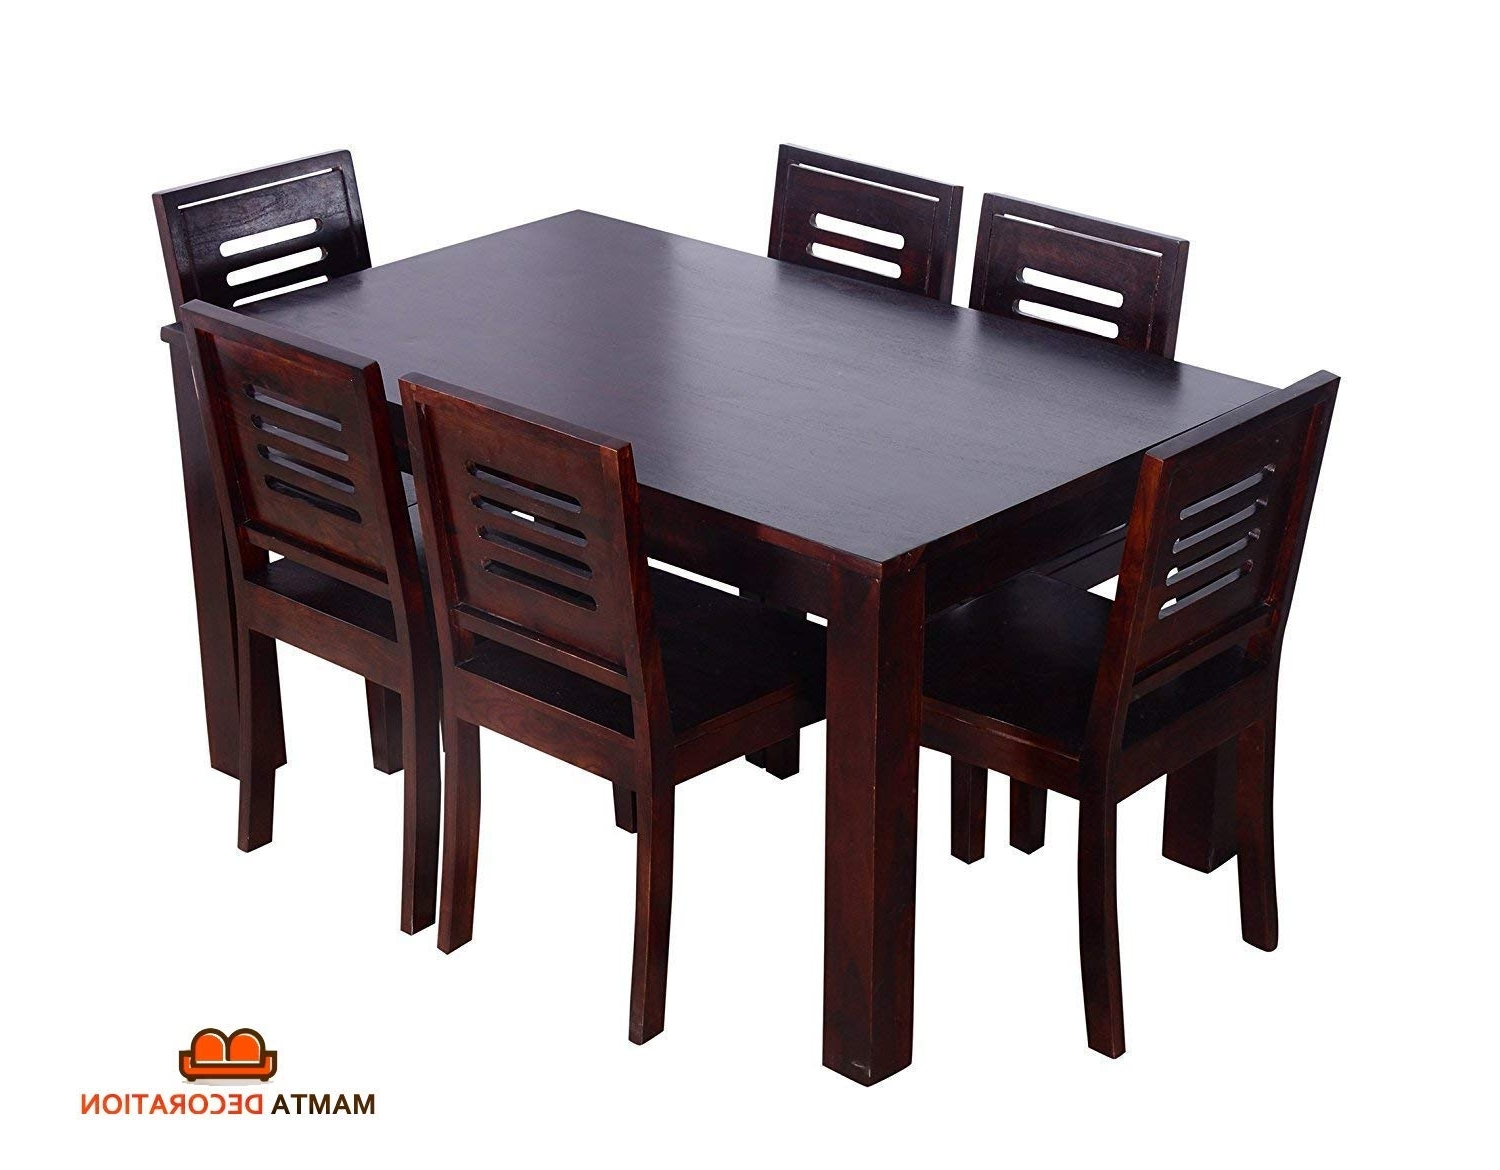 Mamta Decoration Sheesham Wood Wooden Dining Table With 6 Chairs Regarding Widely Used Sheesham Wood Dining Chairs (View 10 of 25)